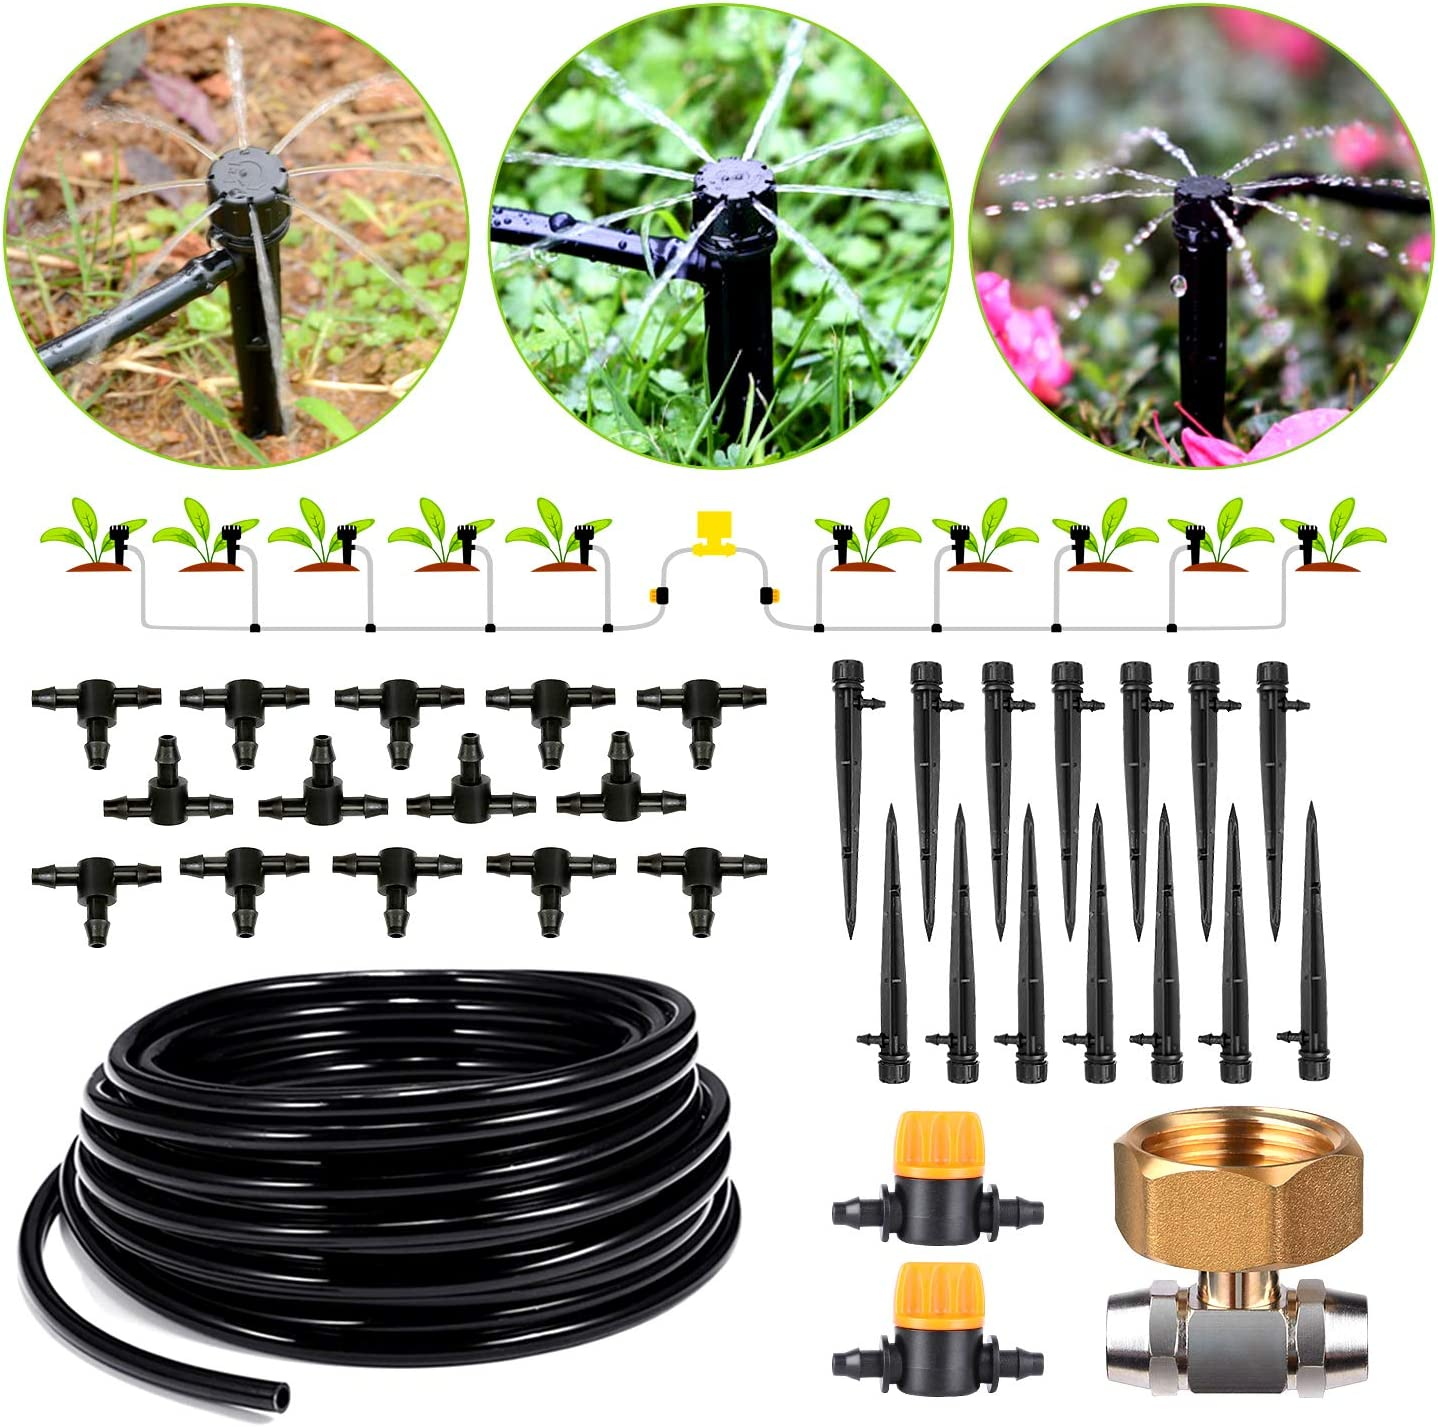 HIRALIY 45.9/14m Drip Irrigation Kits 8x5mm Blank Distribution Tubing Plant Watering System DIY Saving Water Automatic Irrigation Equipment Set for Patio Lawn Garden Greenhouse Flower Bed